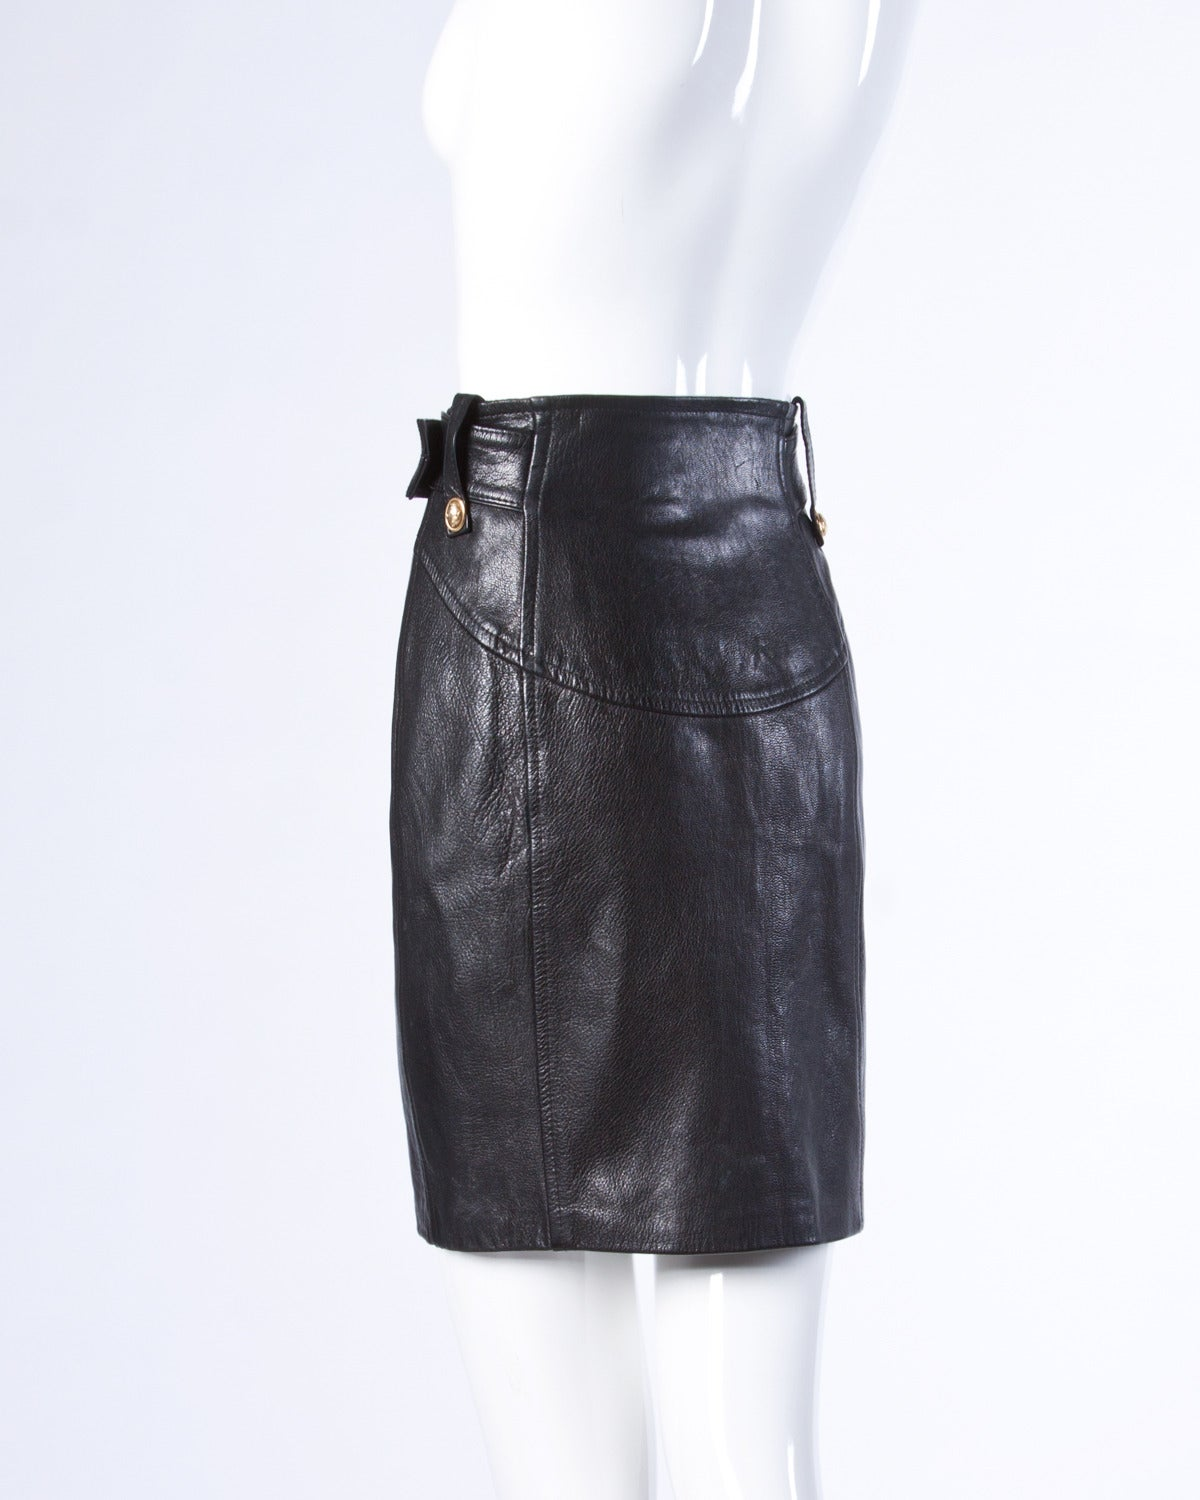 Moschino Vintage 1990s 90s Black Leather Skirt with Heart Belt Buckle In Excellent Condition For Sale In Sparks, NV